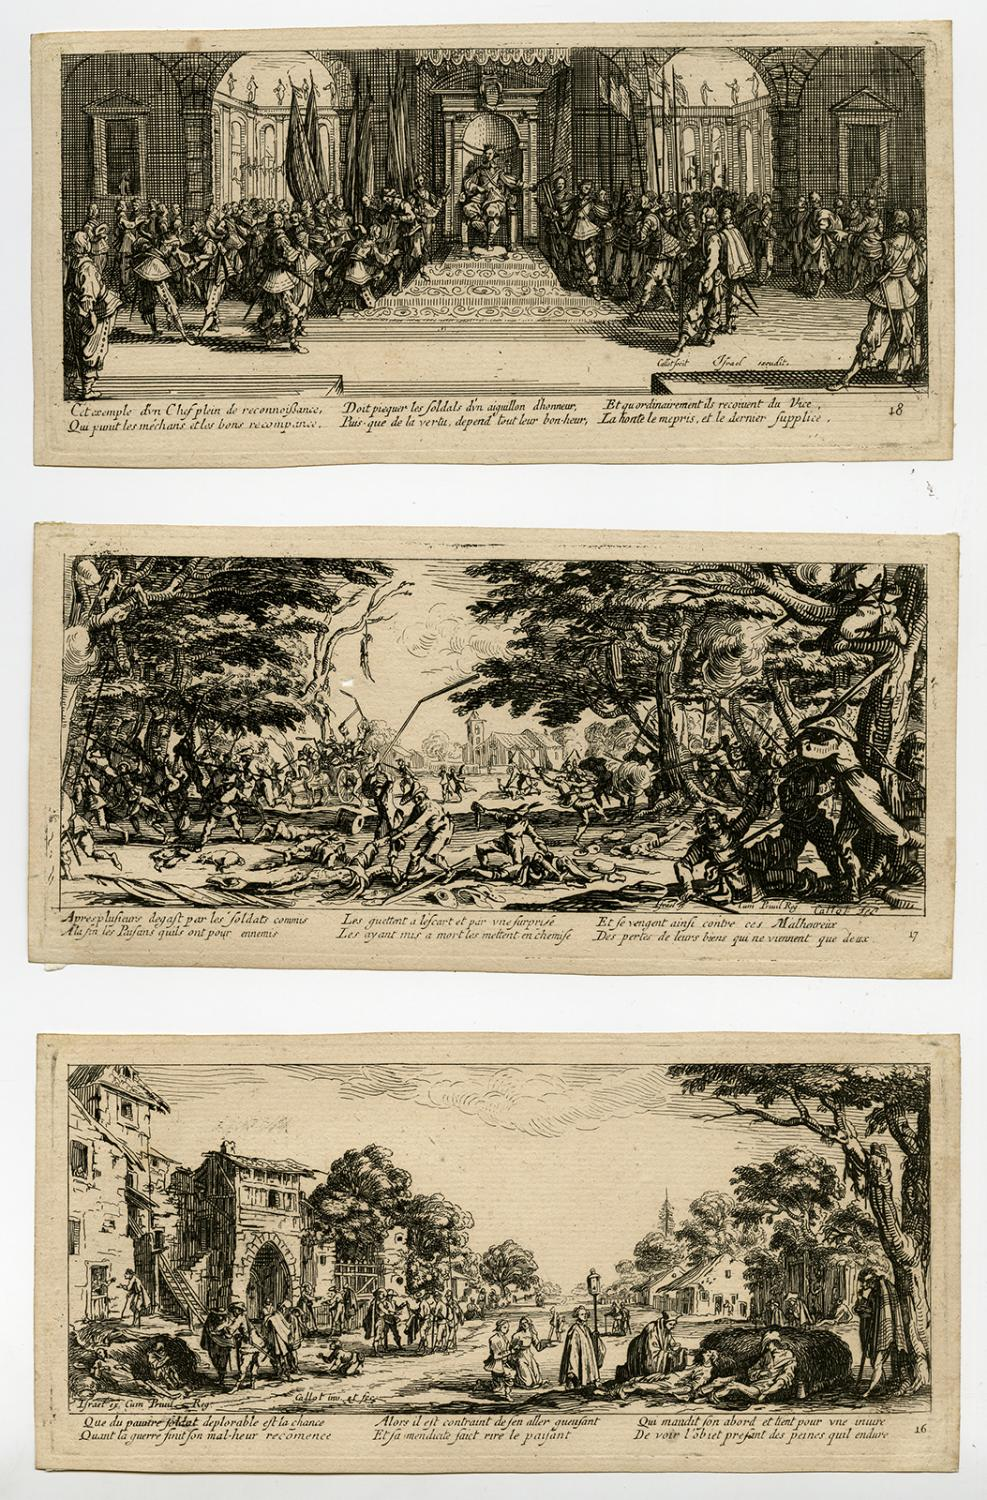 17 Jahrhundert Bild Architektur: 12 Antique Prints-GENRE-MISERES-GUERRE-MISERIES OF WAR